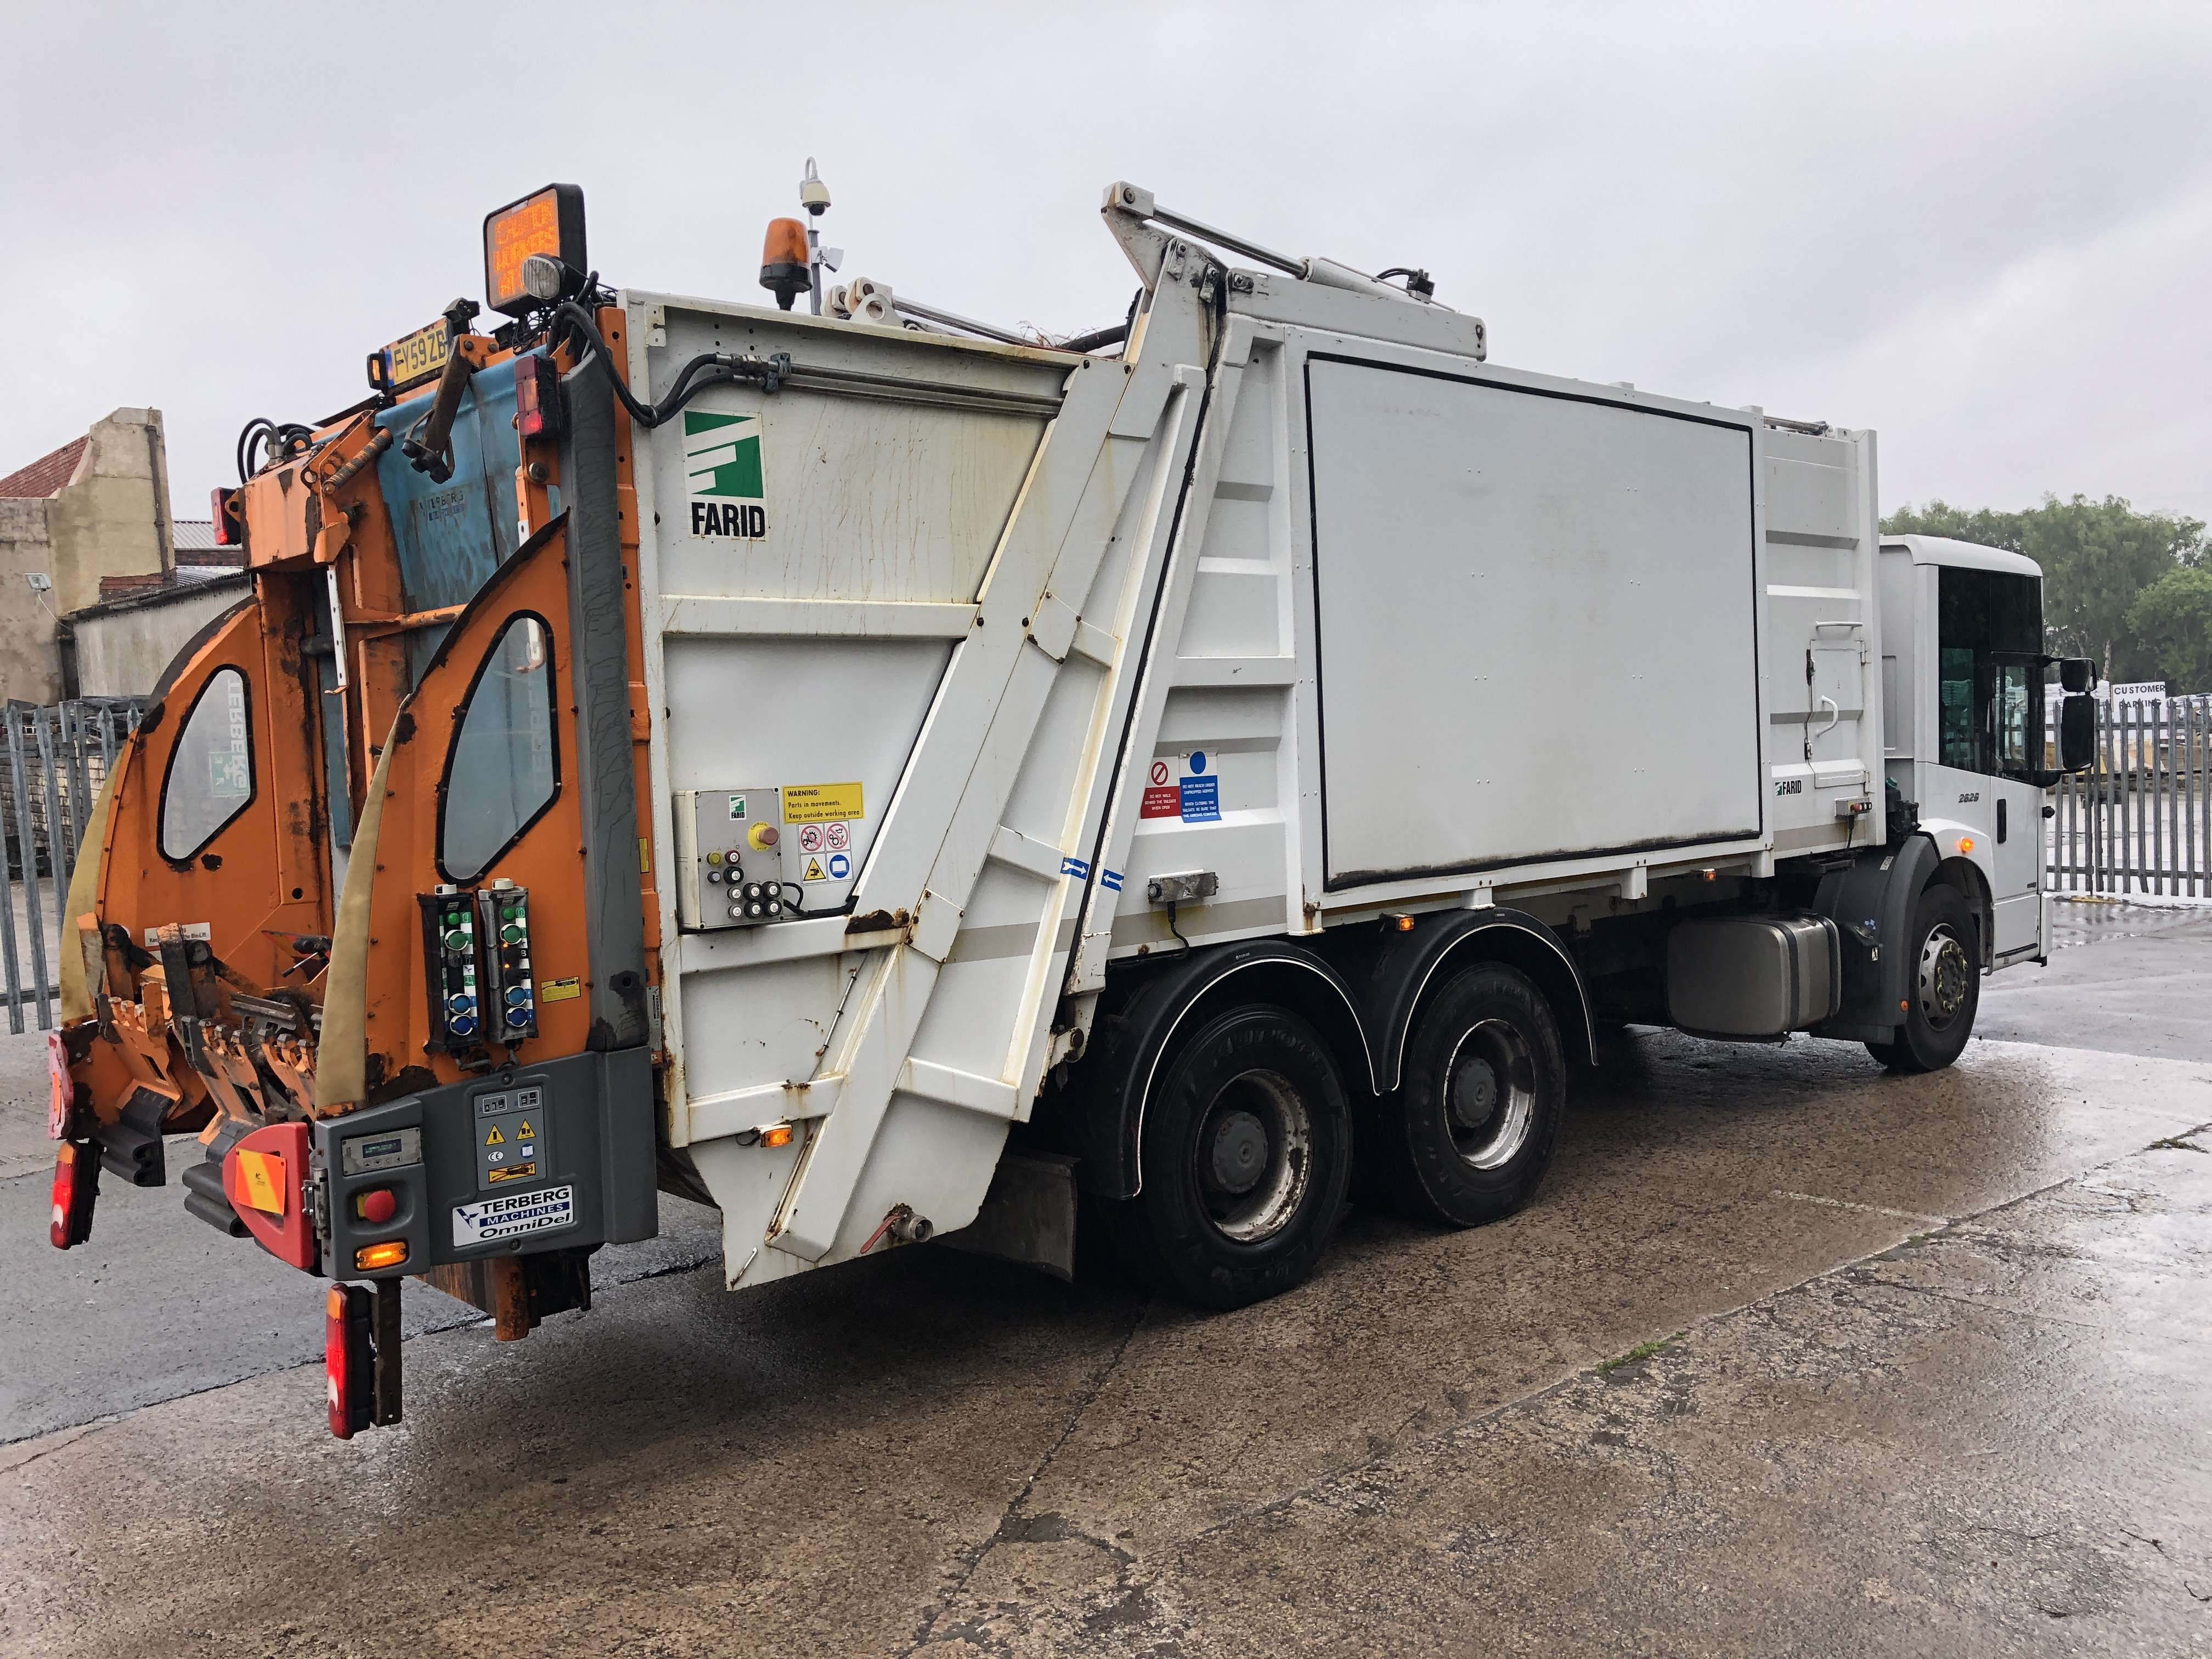 Mercedes Econic 70/30 split body twinpack refuse truck for sale 4